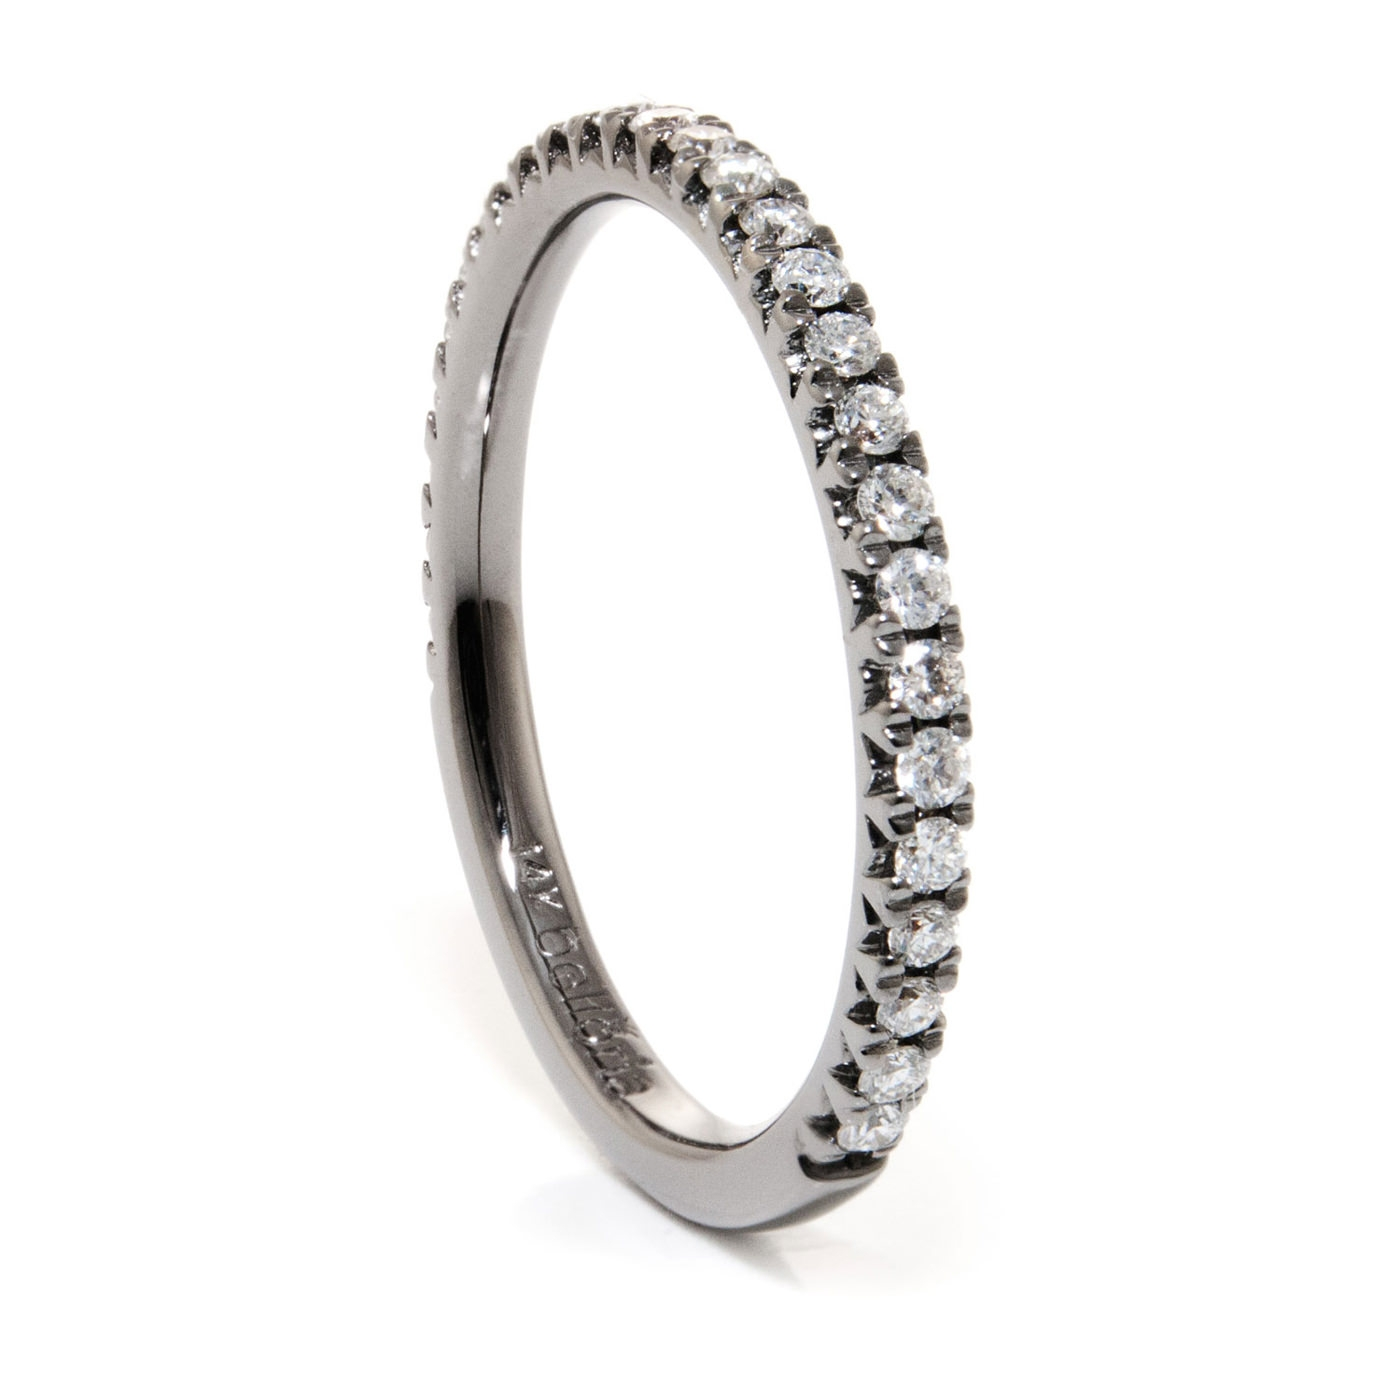 Black Rhodium Gold & Diamond Wedding Ring – Belloria – Eternity Bands Intended For Most Recently Released Rhodium Wedding Bands (Gallery 2 of 15)